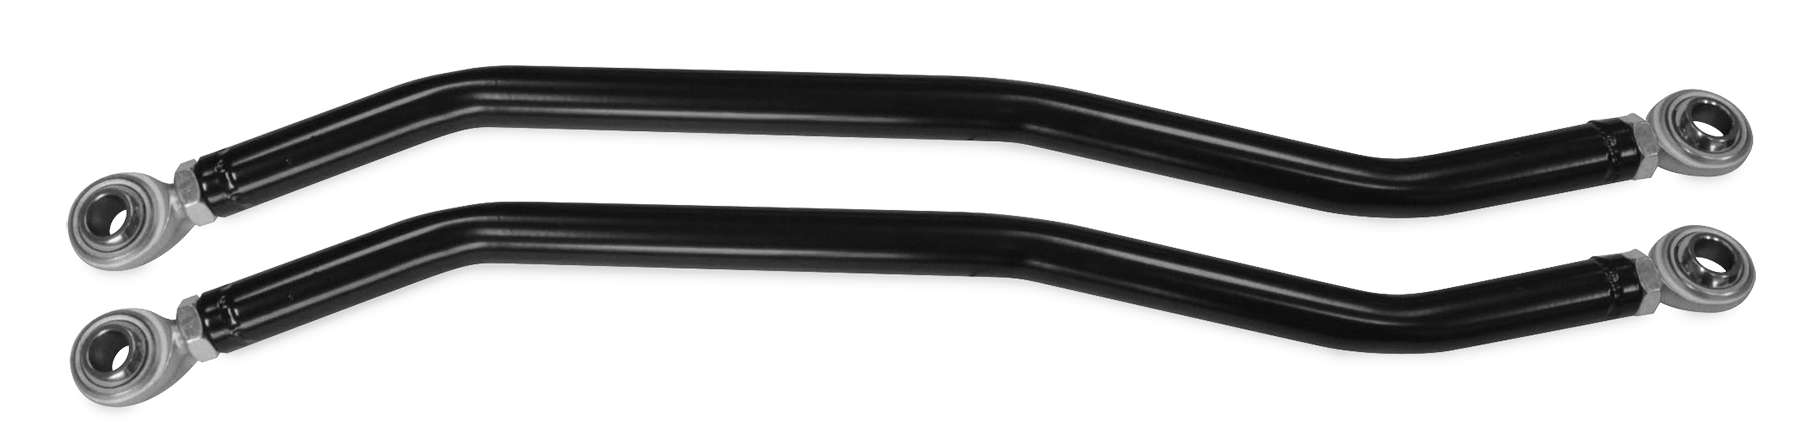 Rear Radius Lowers Only Rods